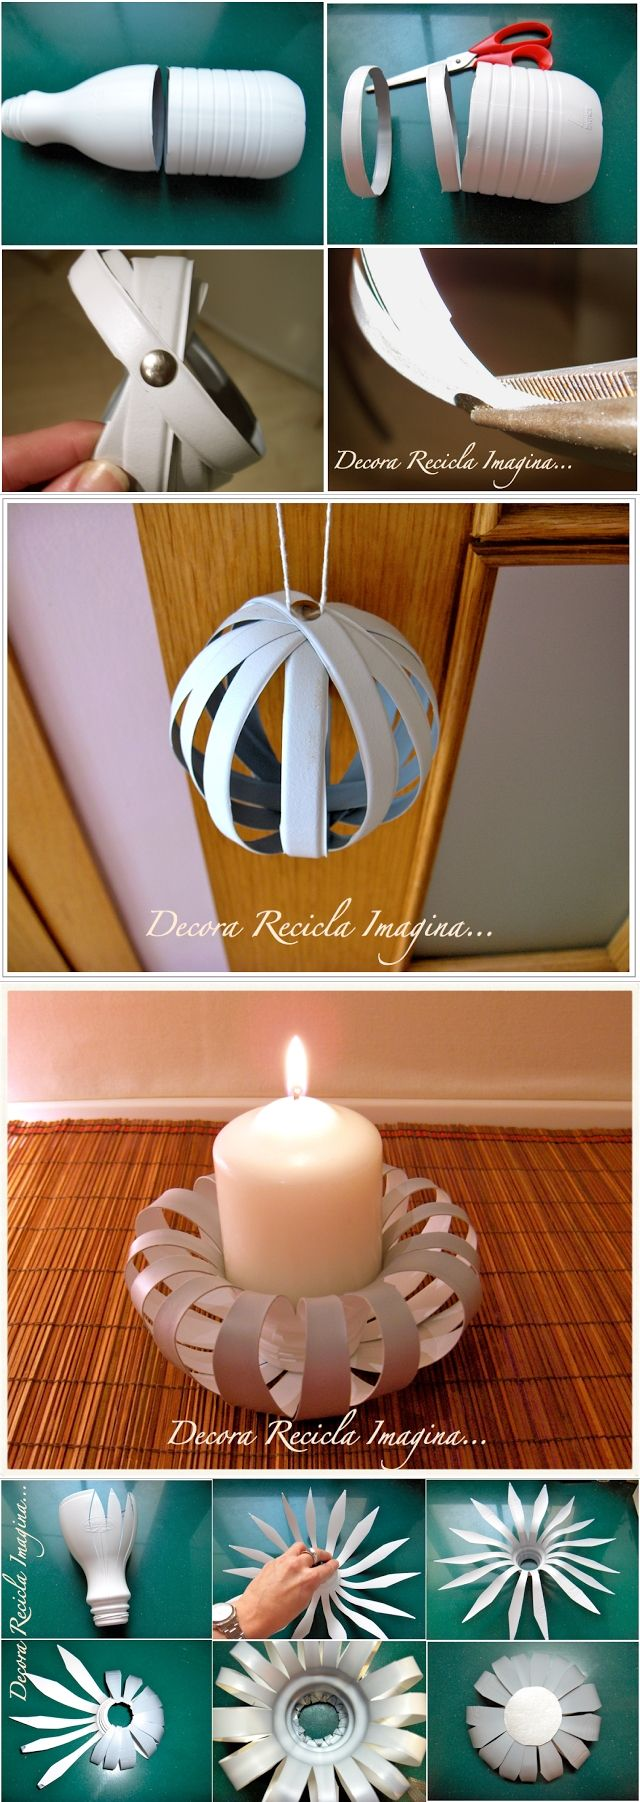 3 Unique Plastic Bottles Recycling ideas For Home Decor | DIY Candle Holder from Old Plastic Bottle....3 Unique Plastic Bottles Recycling Ideas For Home Decor